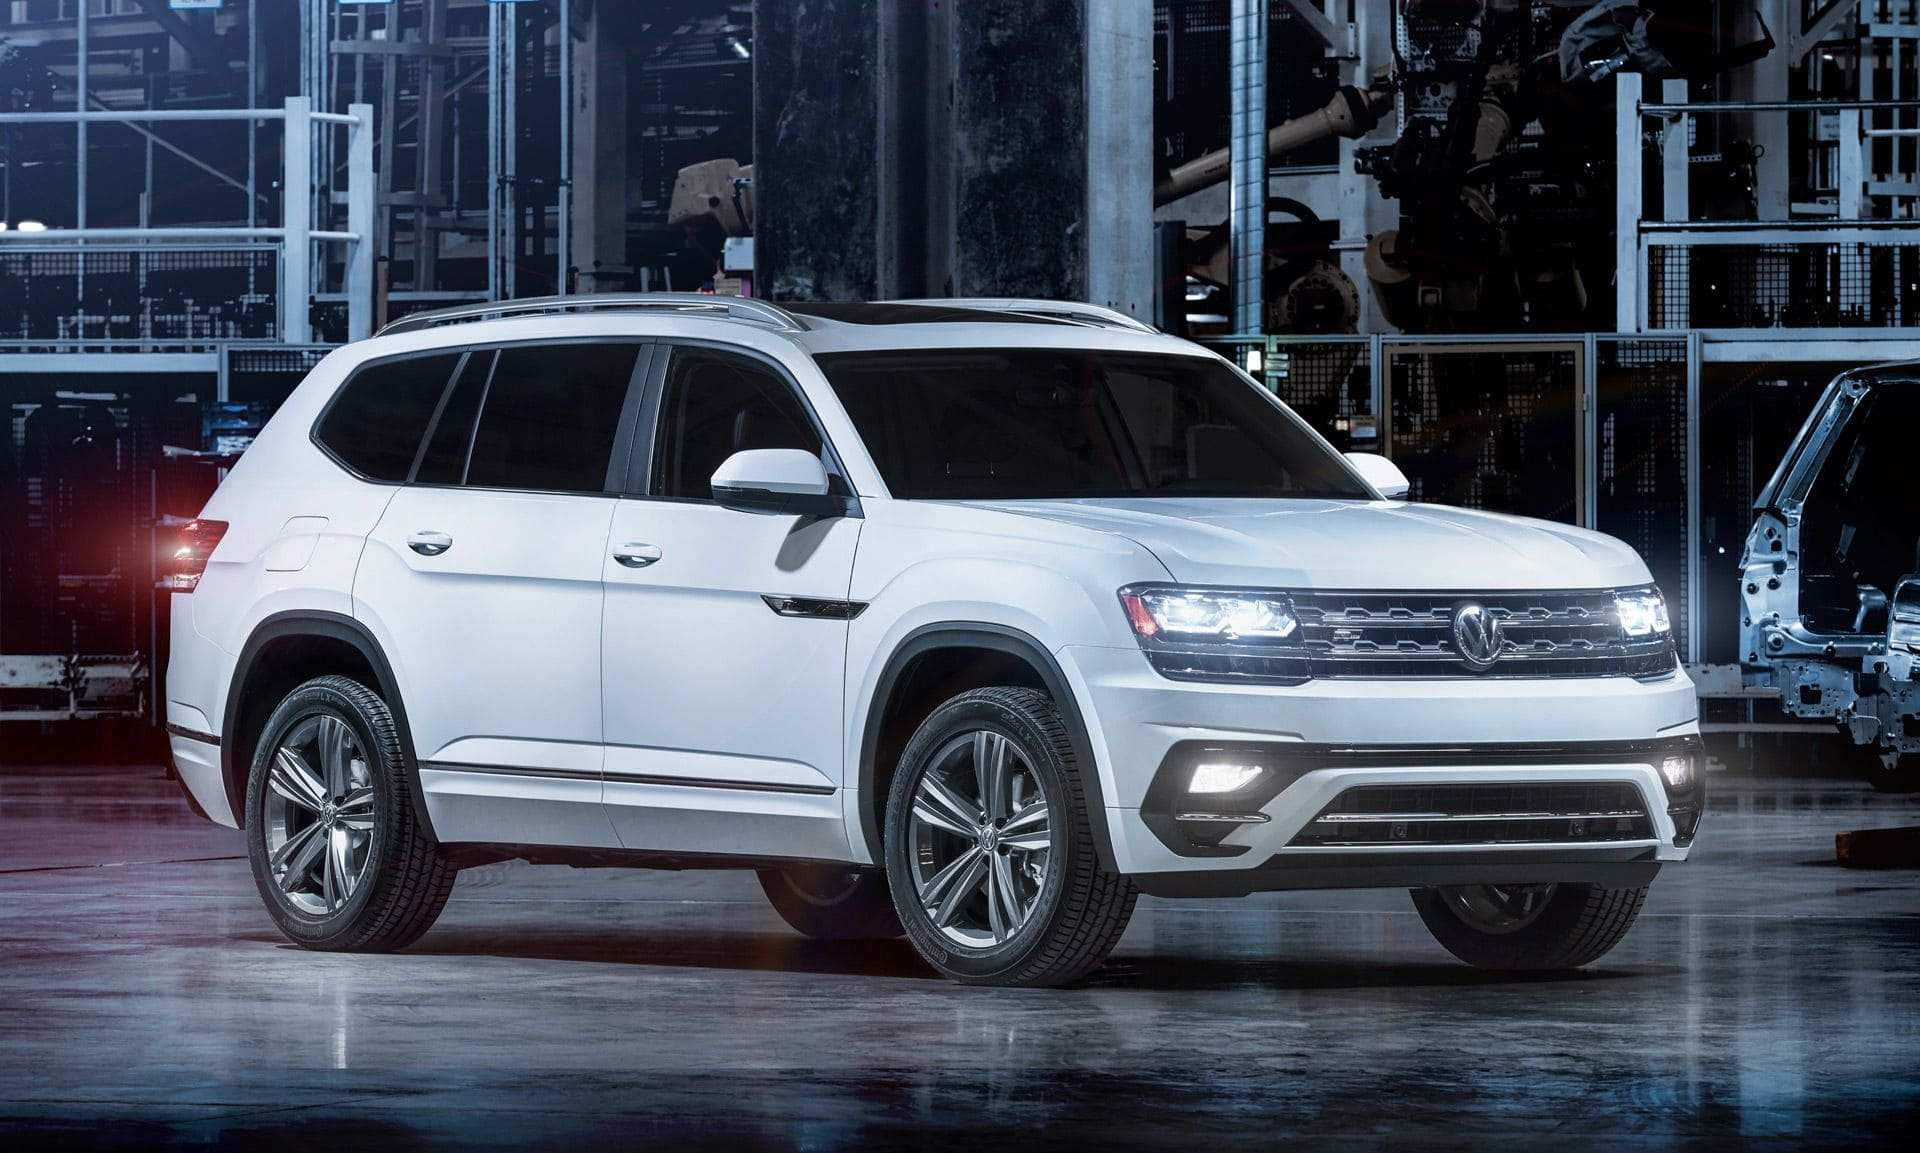 43 New Volkswagen Atlas 2020 Price Review by Volkswagen Atlas 2020 Price